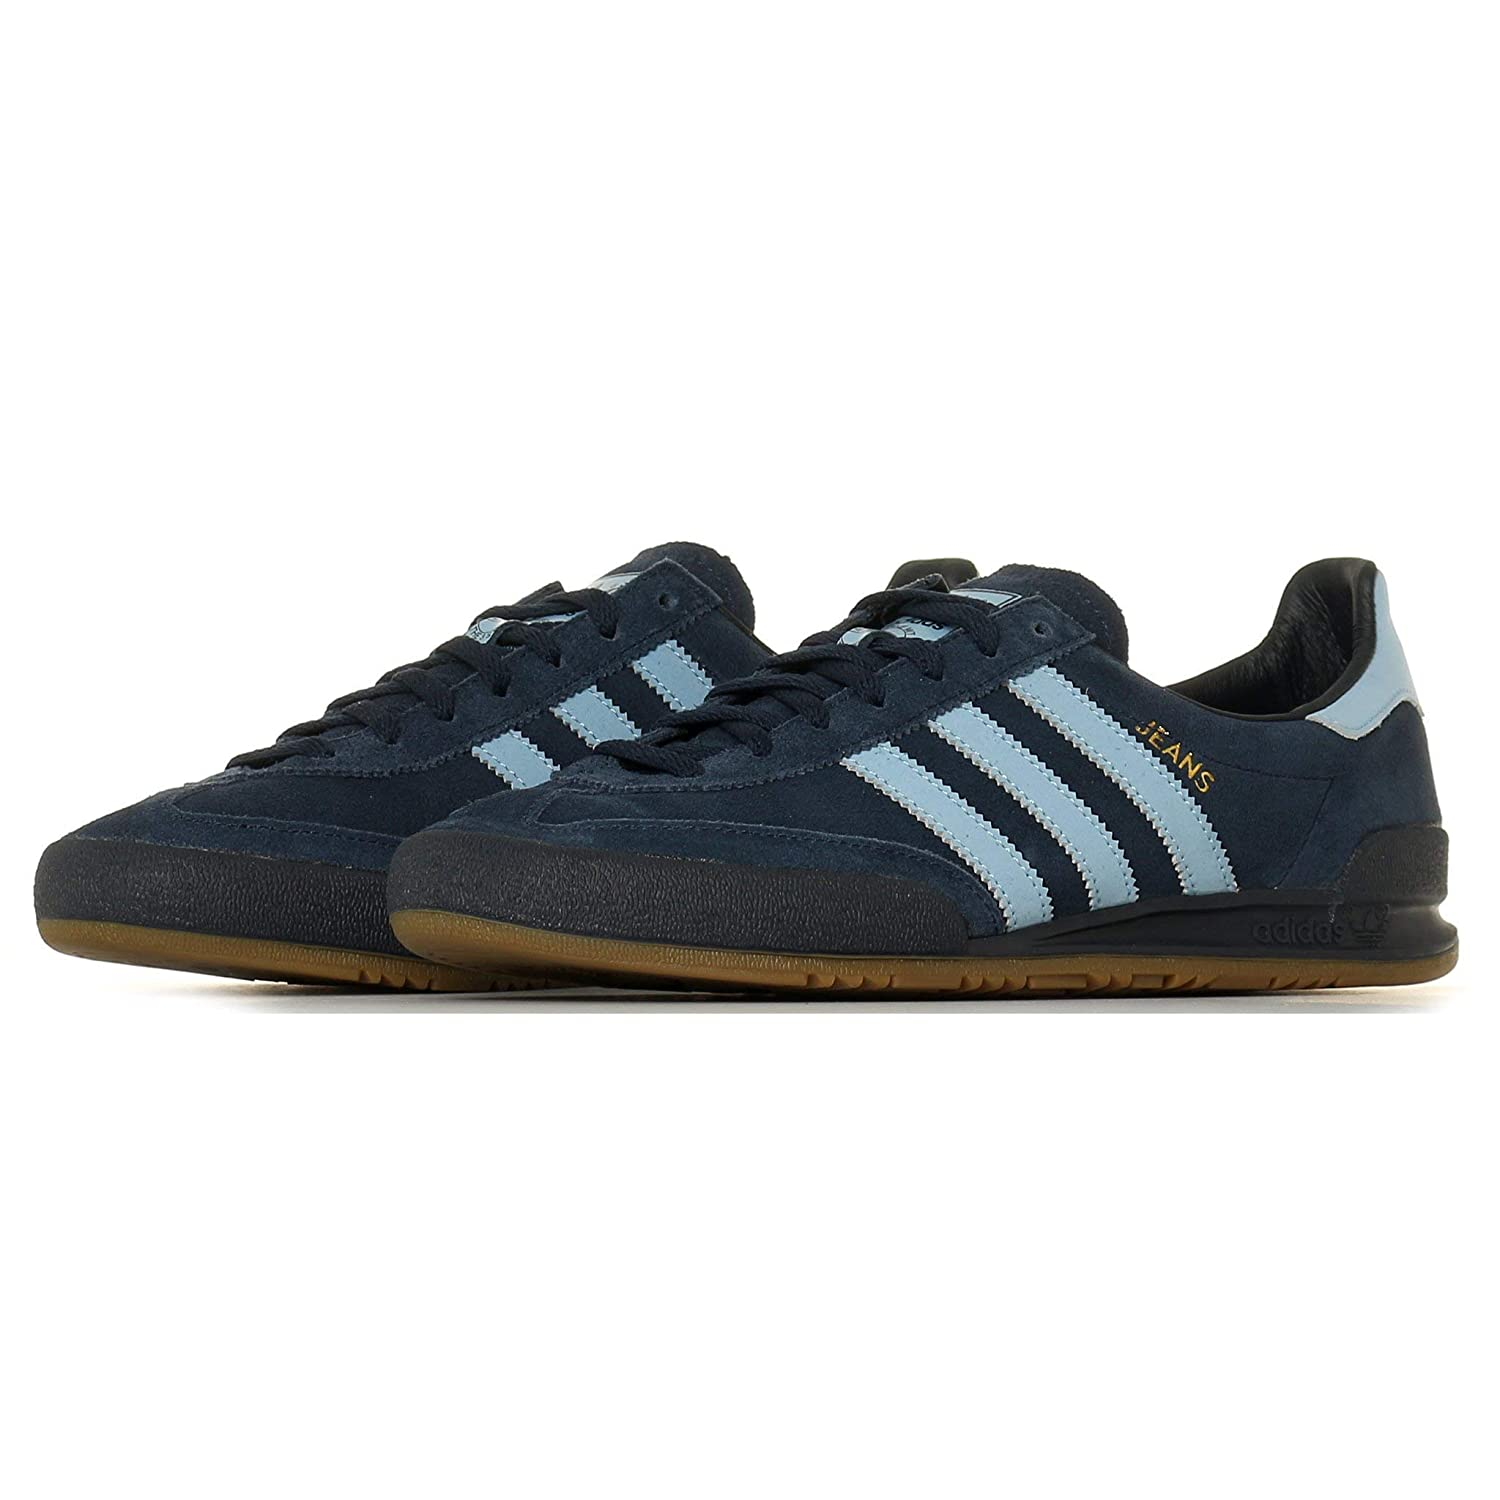 Adidas TrainersAmazon ukShoesamp; Bags JeansMen's co wPnk0O